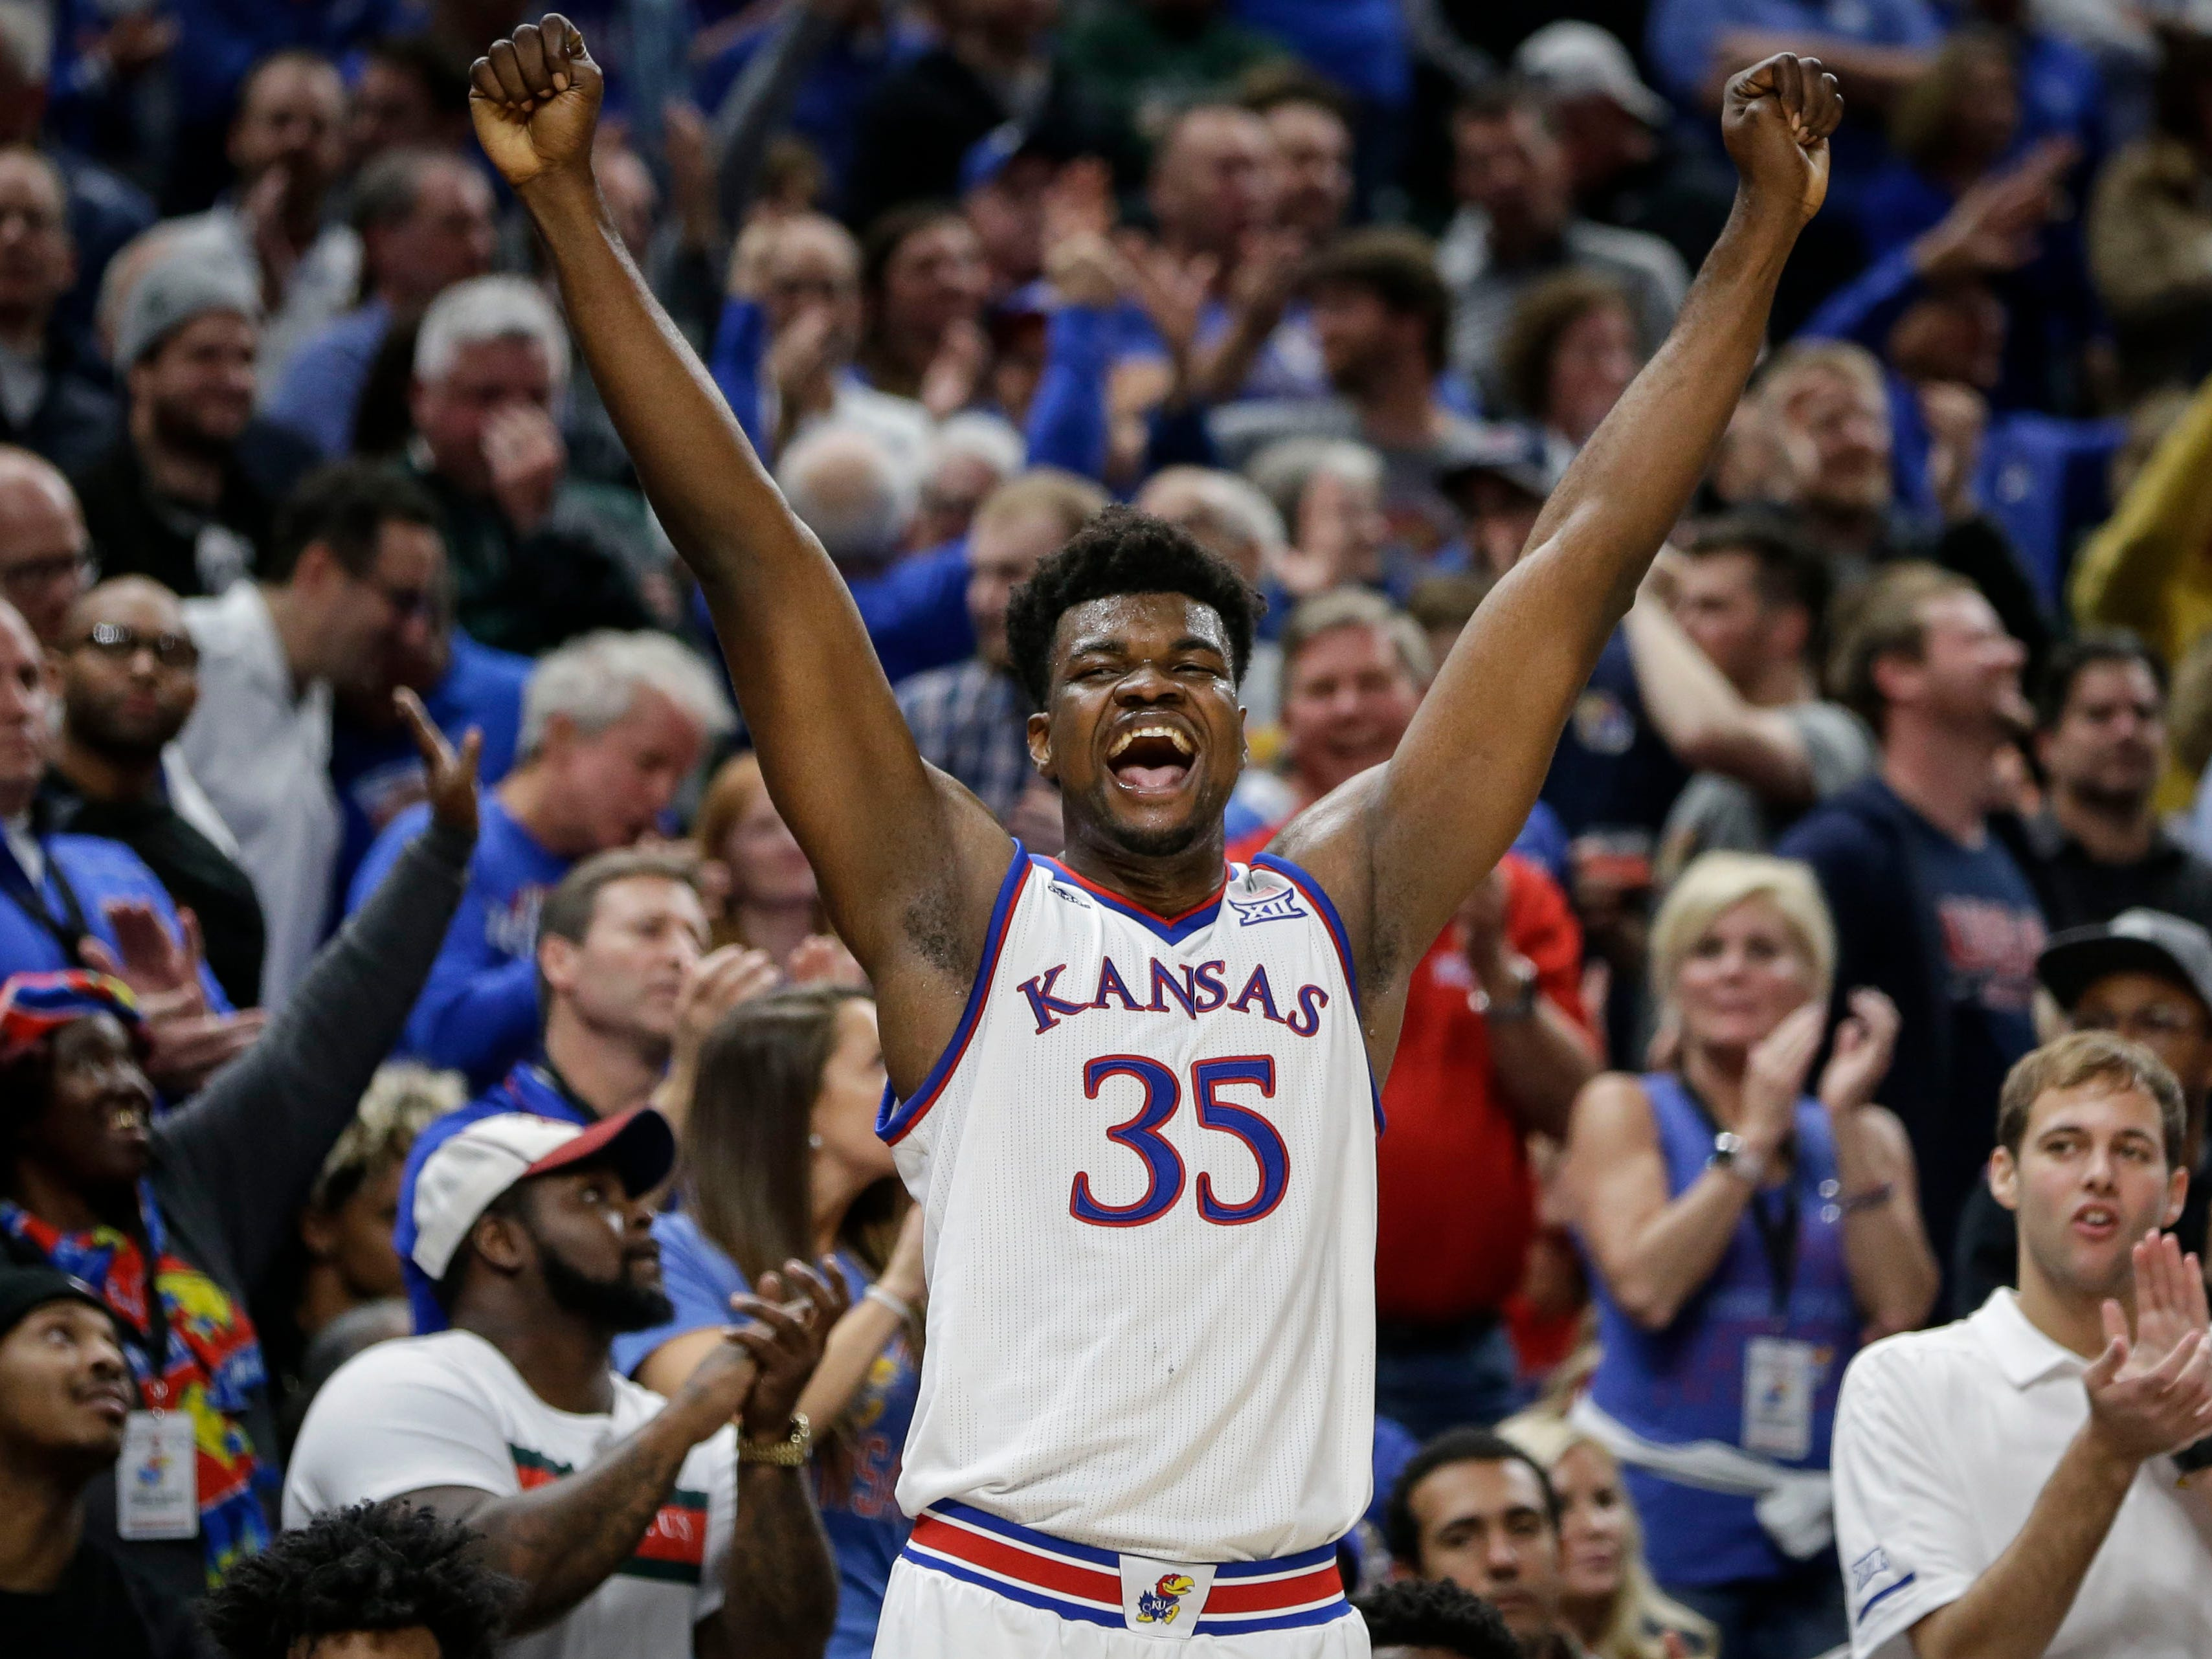 Kansas center Udoka Azubuike (35) reacts to Michigan State committing a foul late in the second half of an NCAA college basketball game at the Champions Classic in Indianapolis on Tuesday, Nov. 6, 2018. Kansas won 92-87.